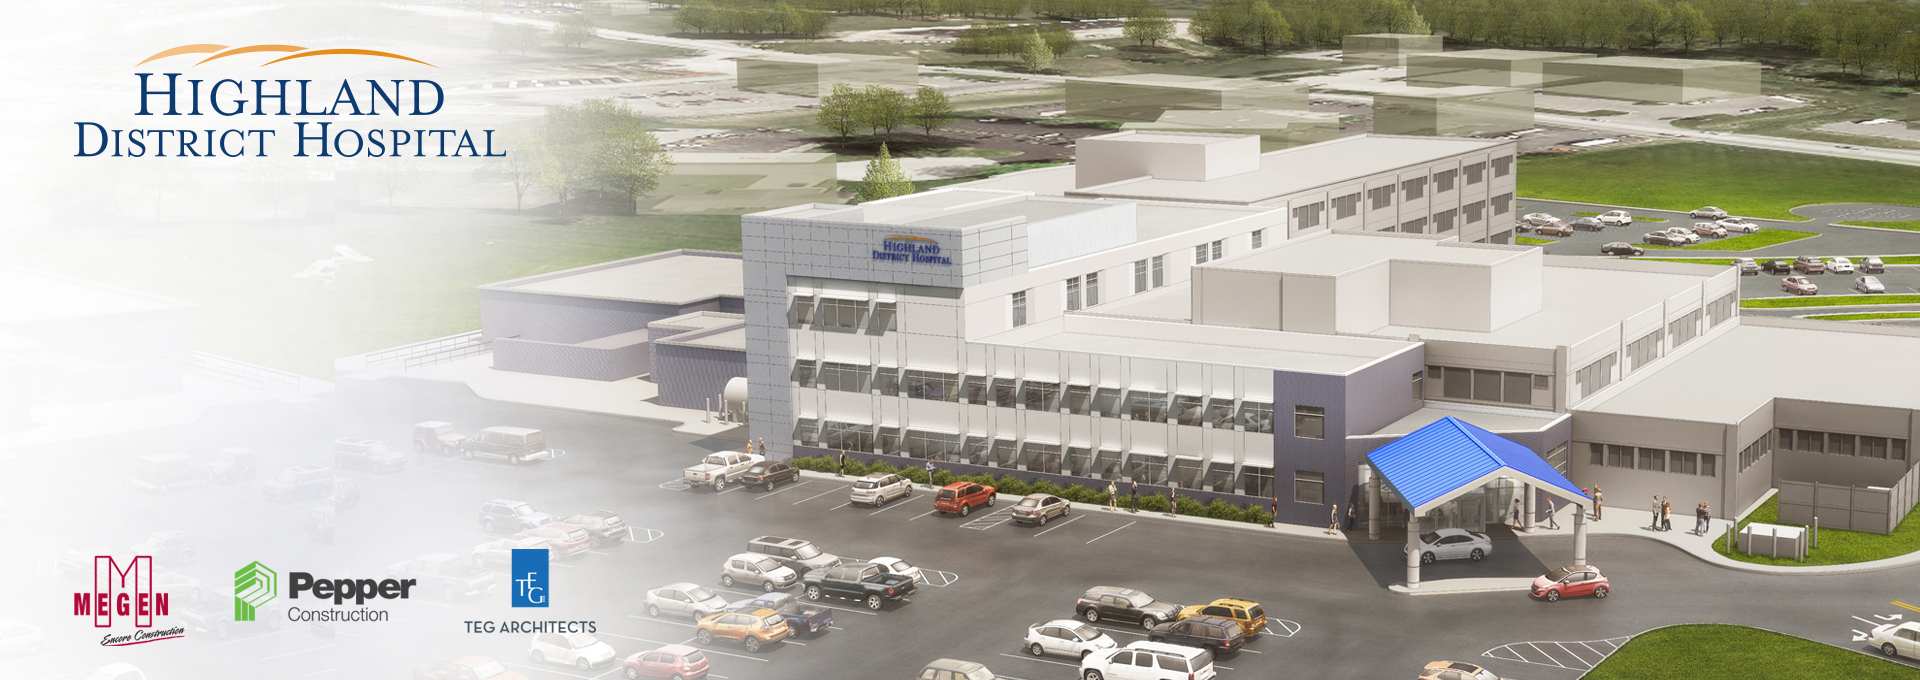 Highland District Hospital Expansion